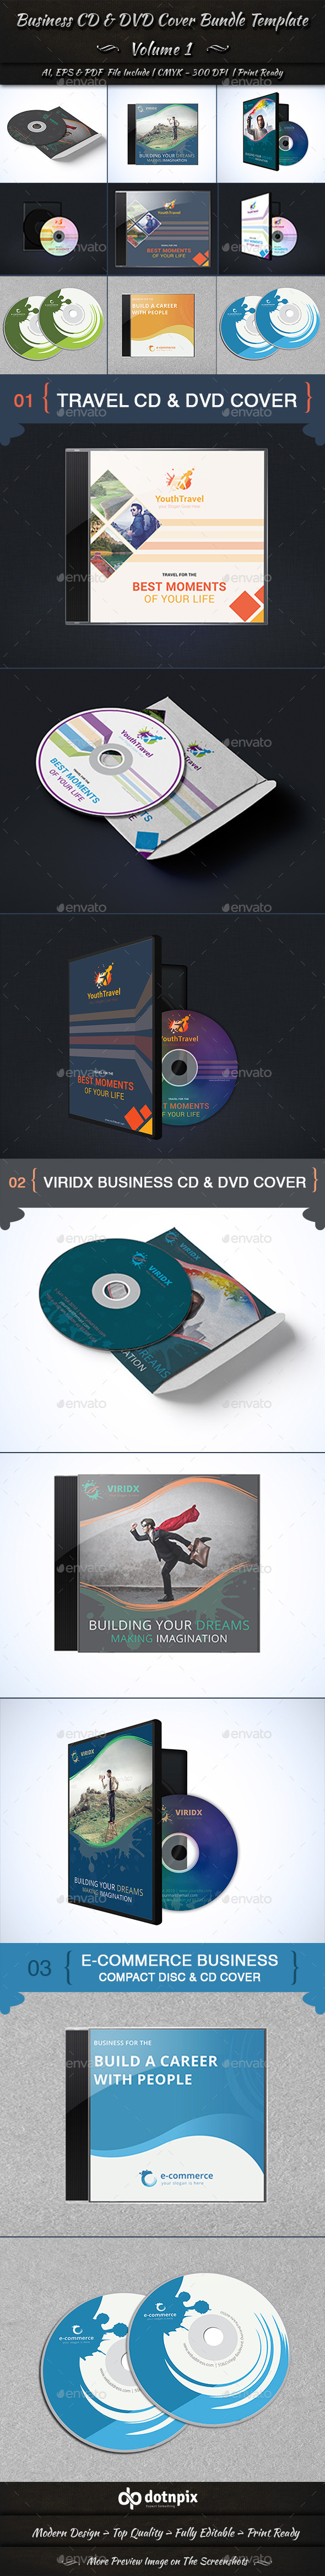 GraphicRiver Business CD & DVD Cover Bundle Template Volume 1 10822569